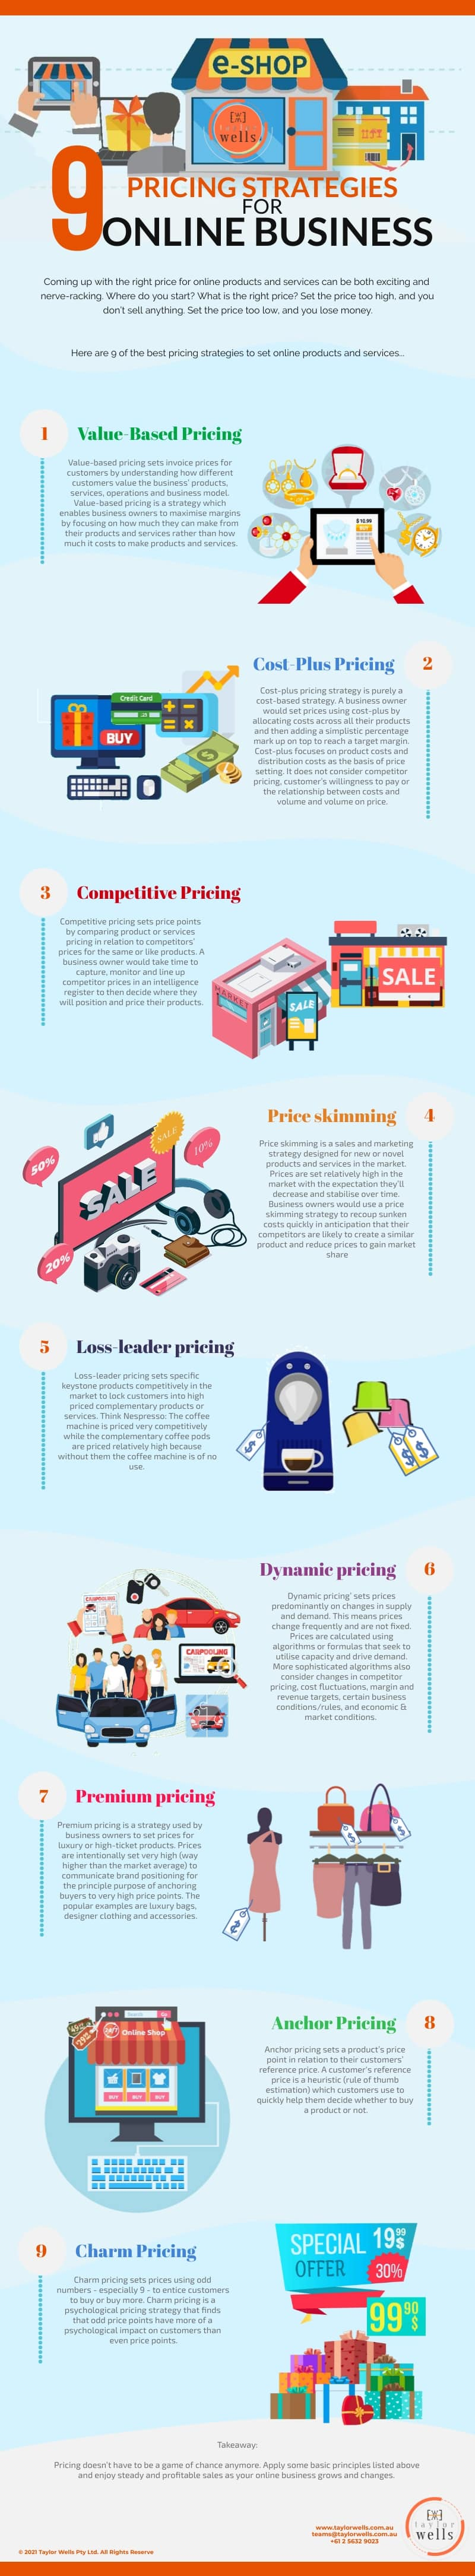 9 Pricing Strategies for Online Business